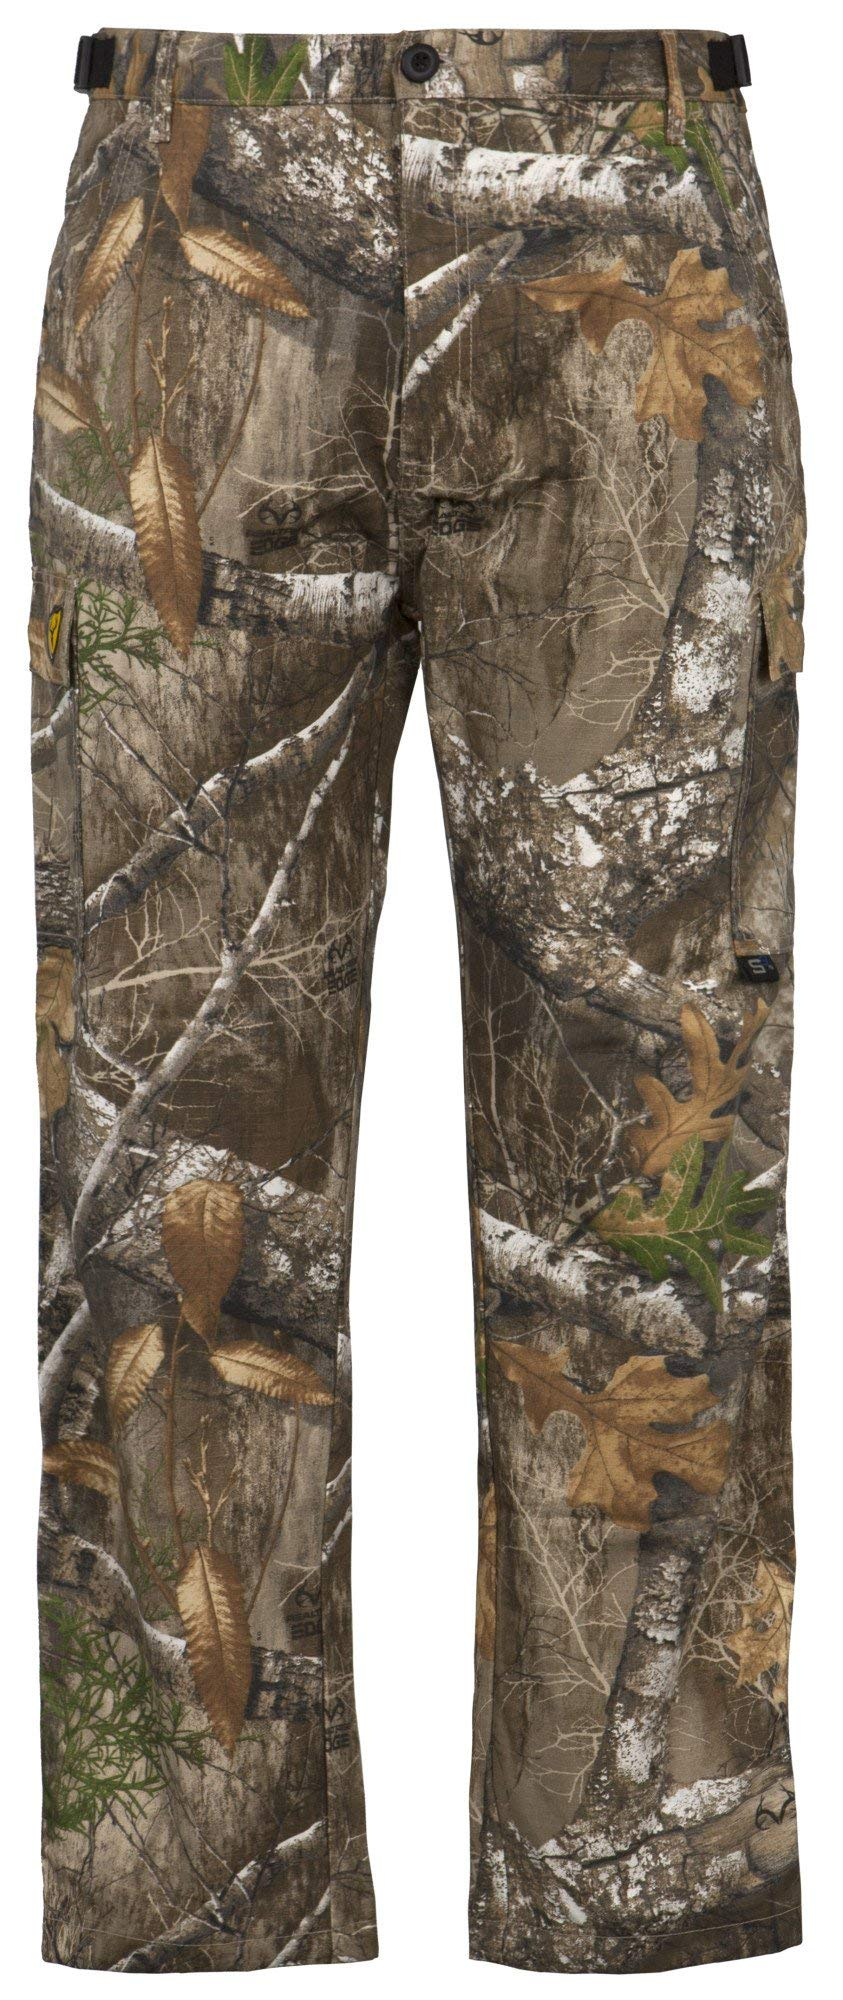 Scentblocker Men's 6-Pocket Pants, Realtree Edge, 3XL by Scent Blocker